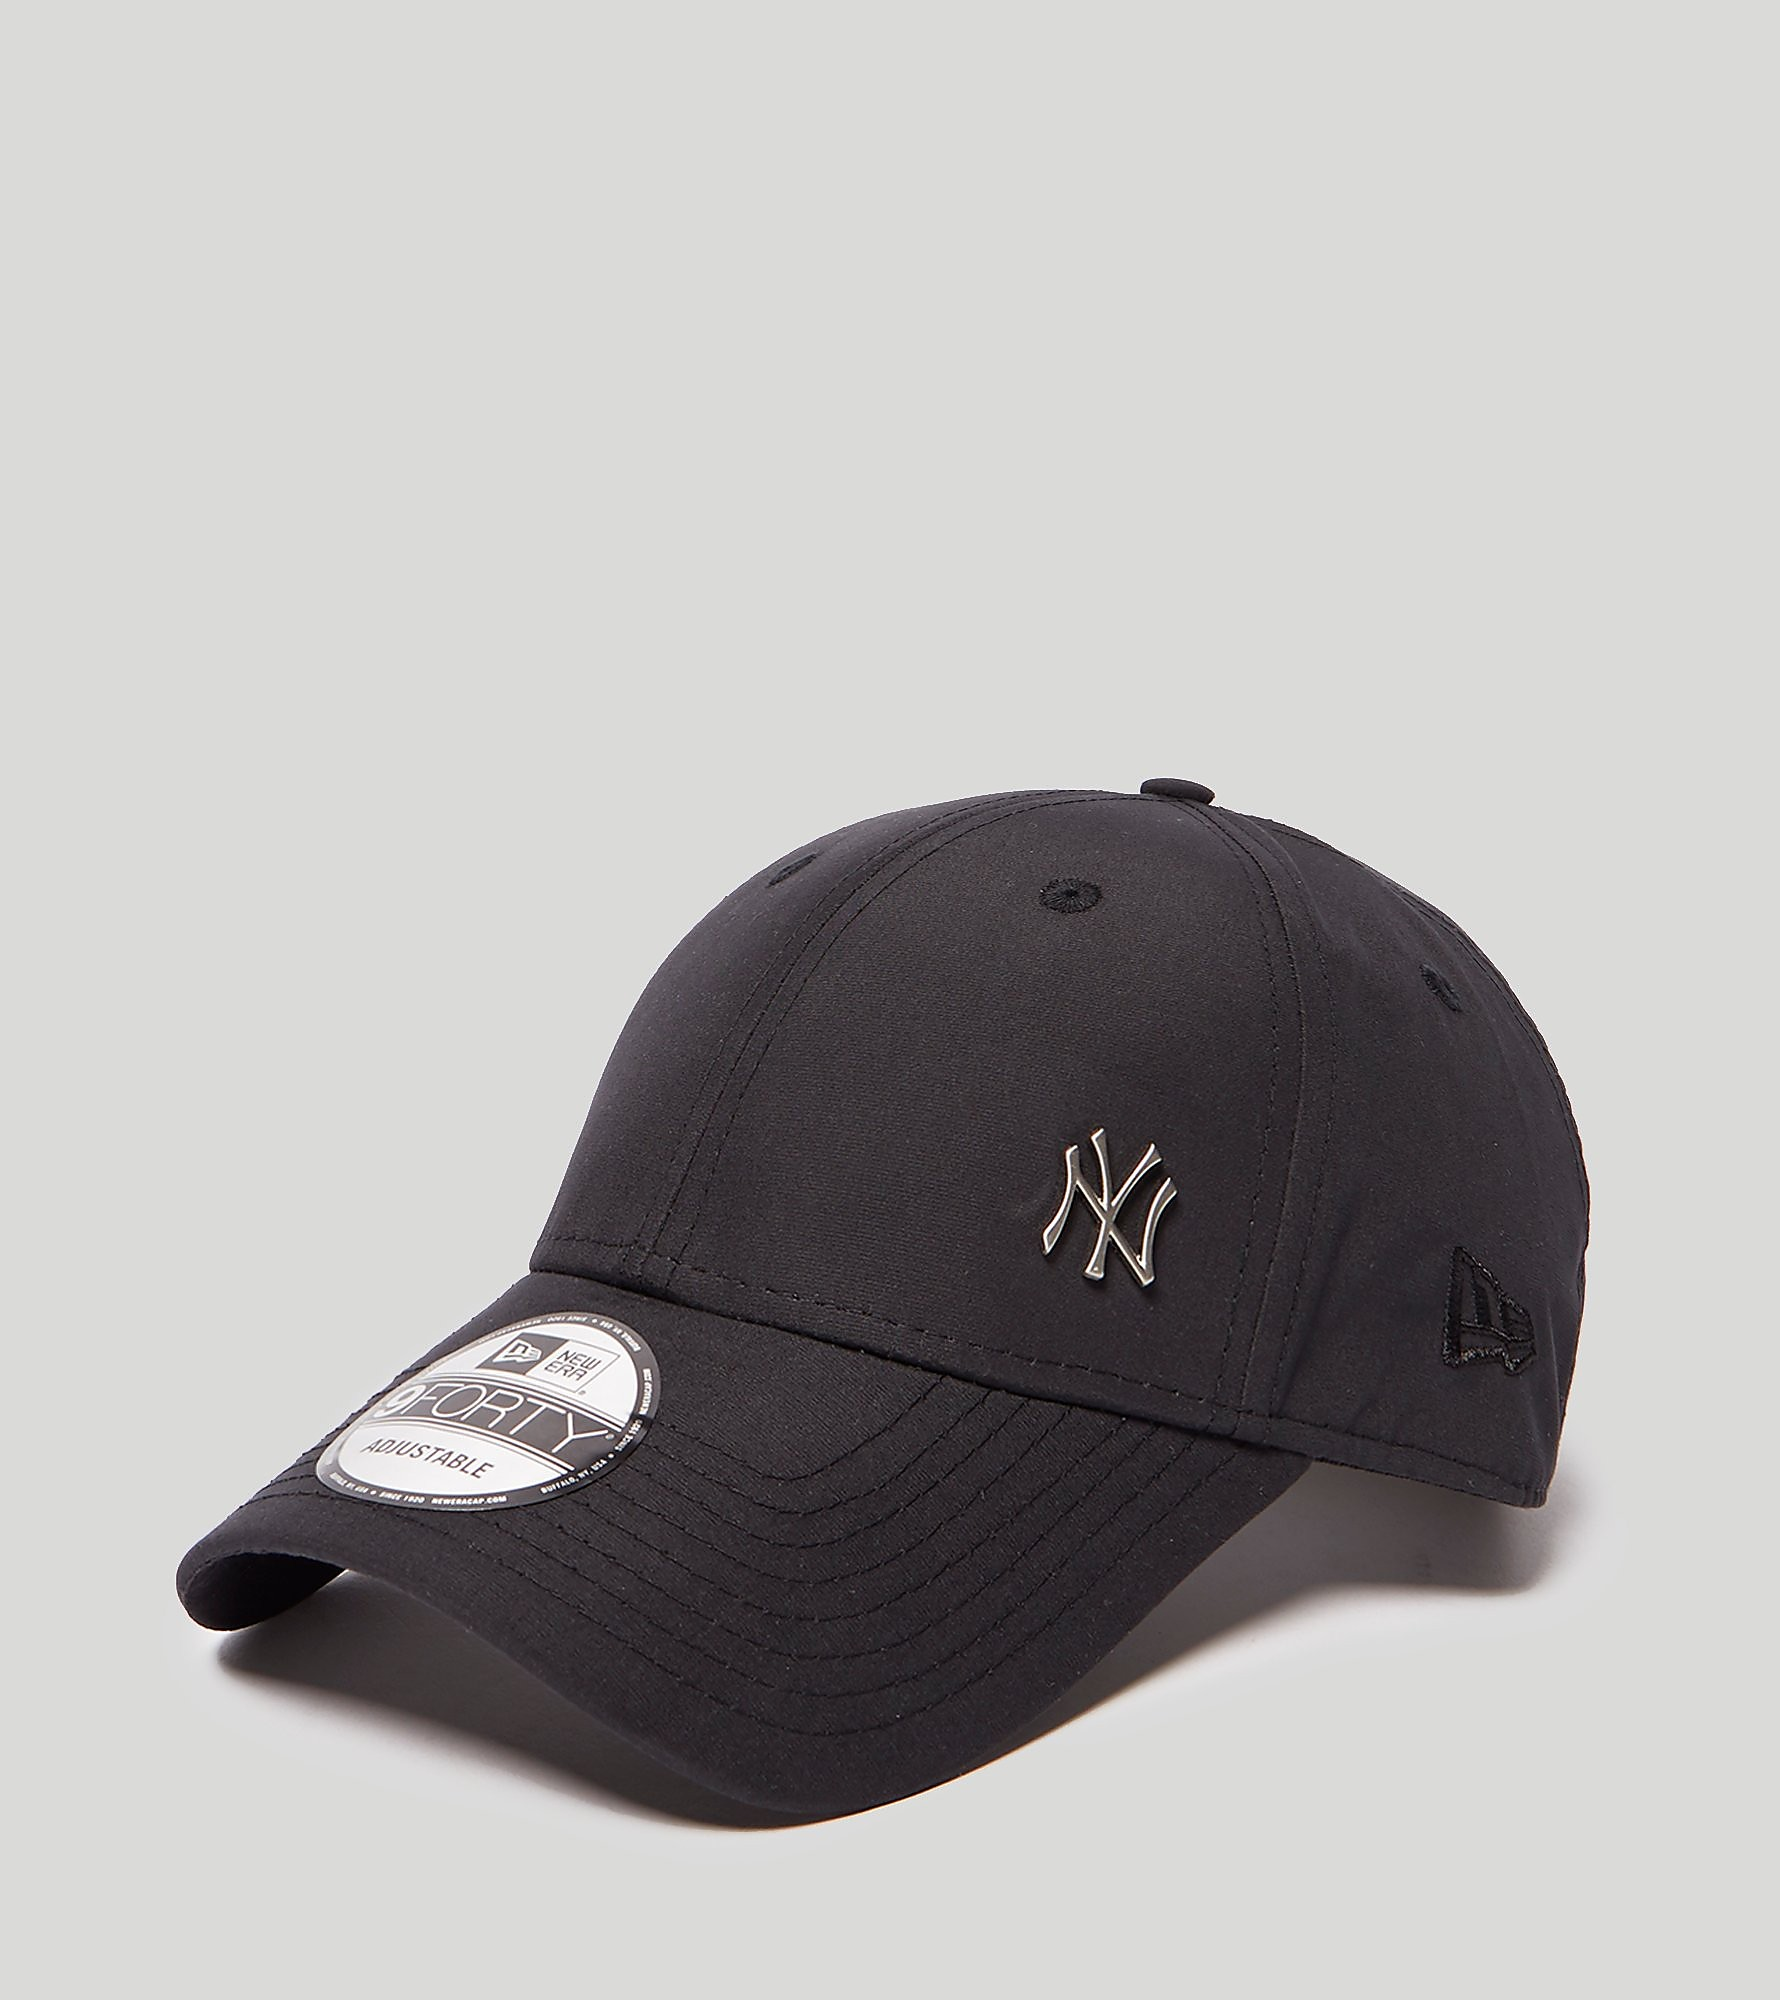 New Era 9FORTY Flawless NY Cap